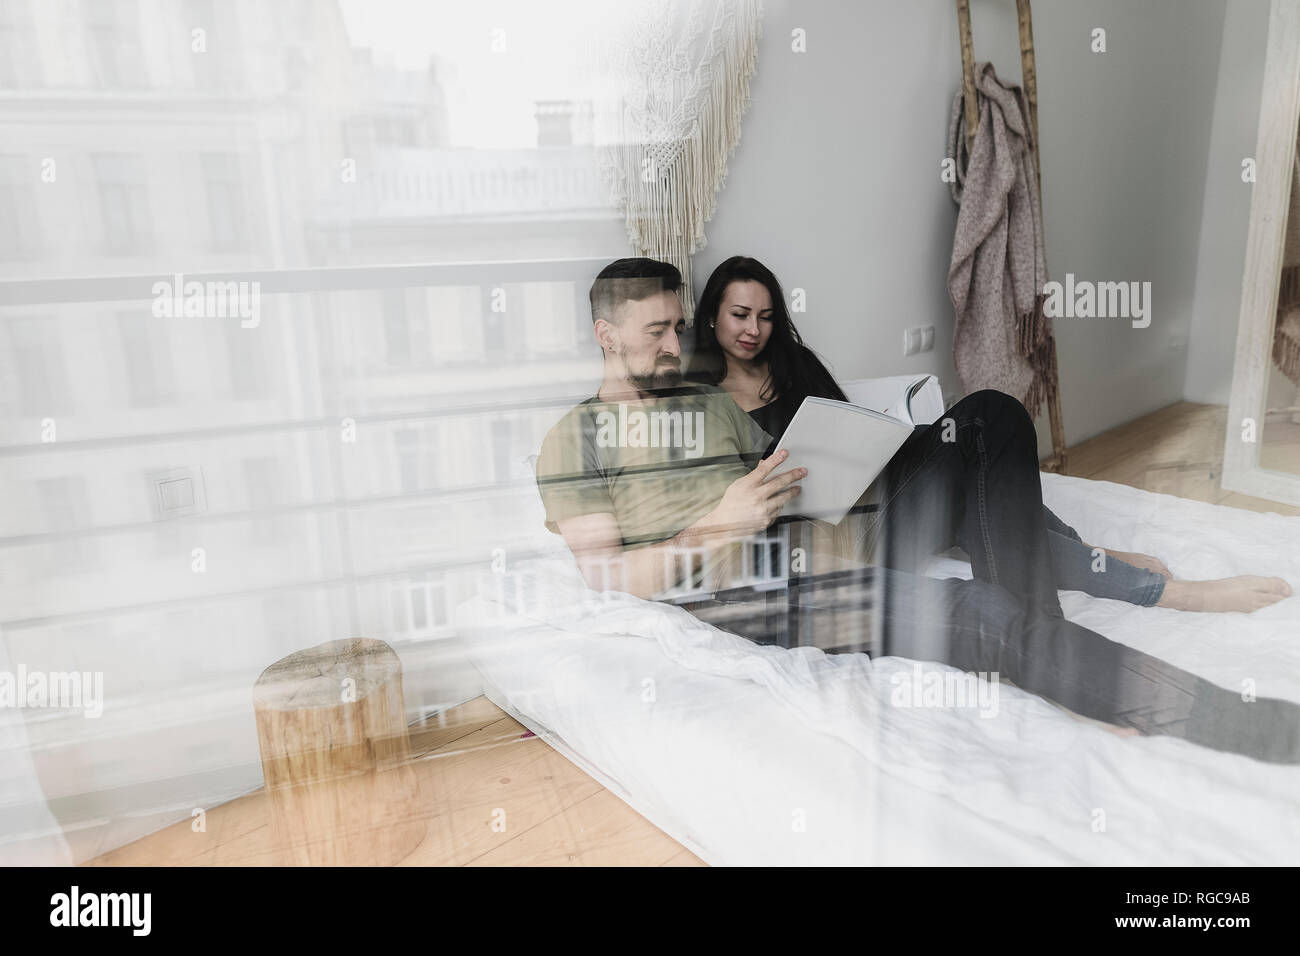 Couple sitting on bed, flipping through a book - Stock Image